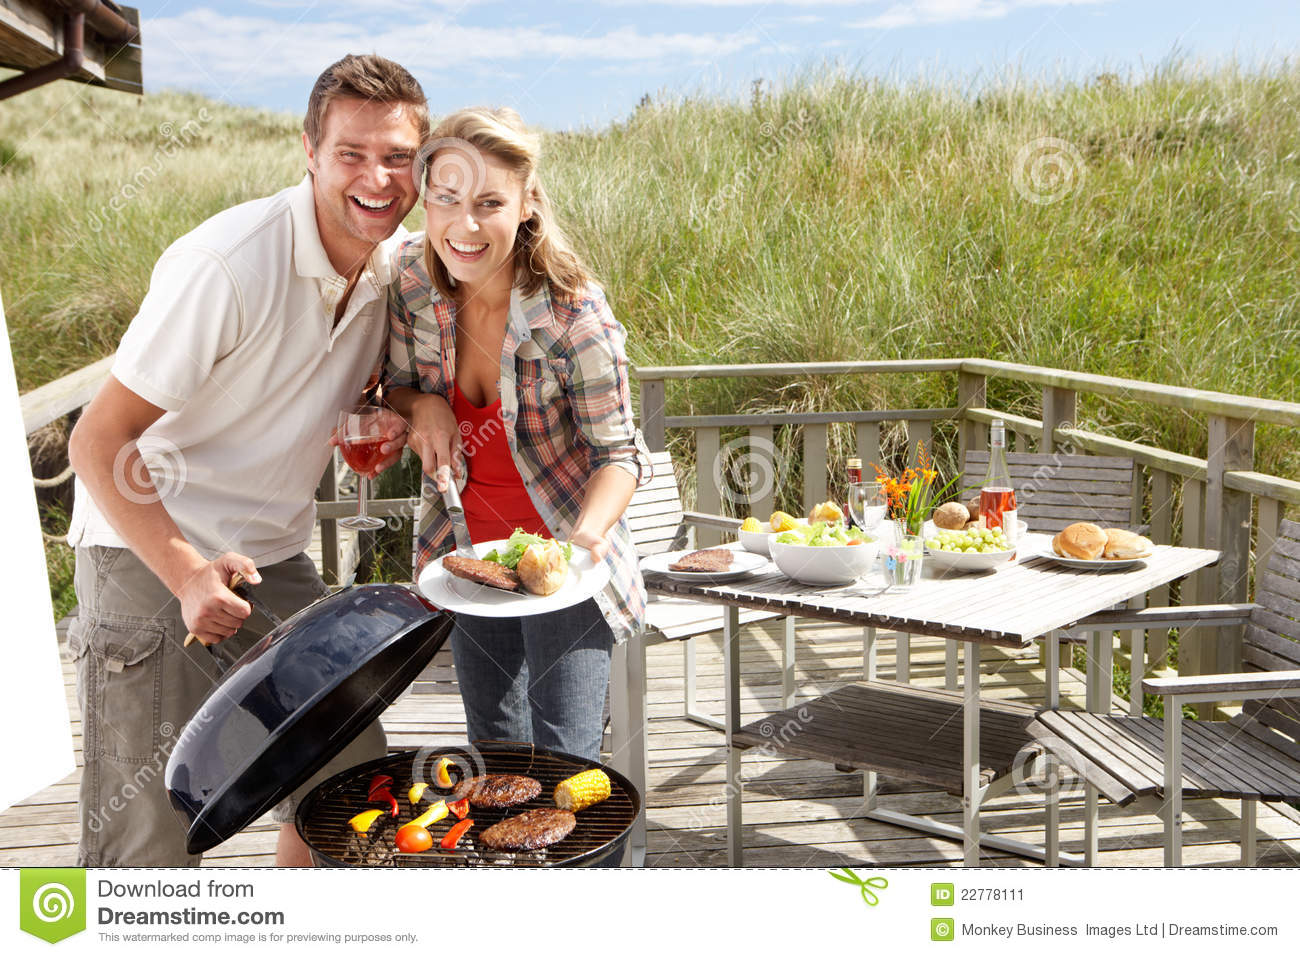 22fdf6300f1 Couple On Vacation Having Barbecue Stock Image - Image of chalet ...